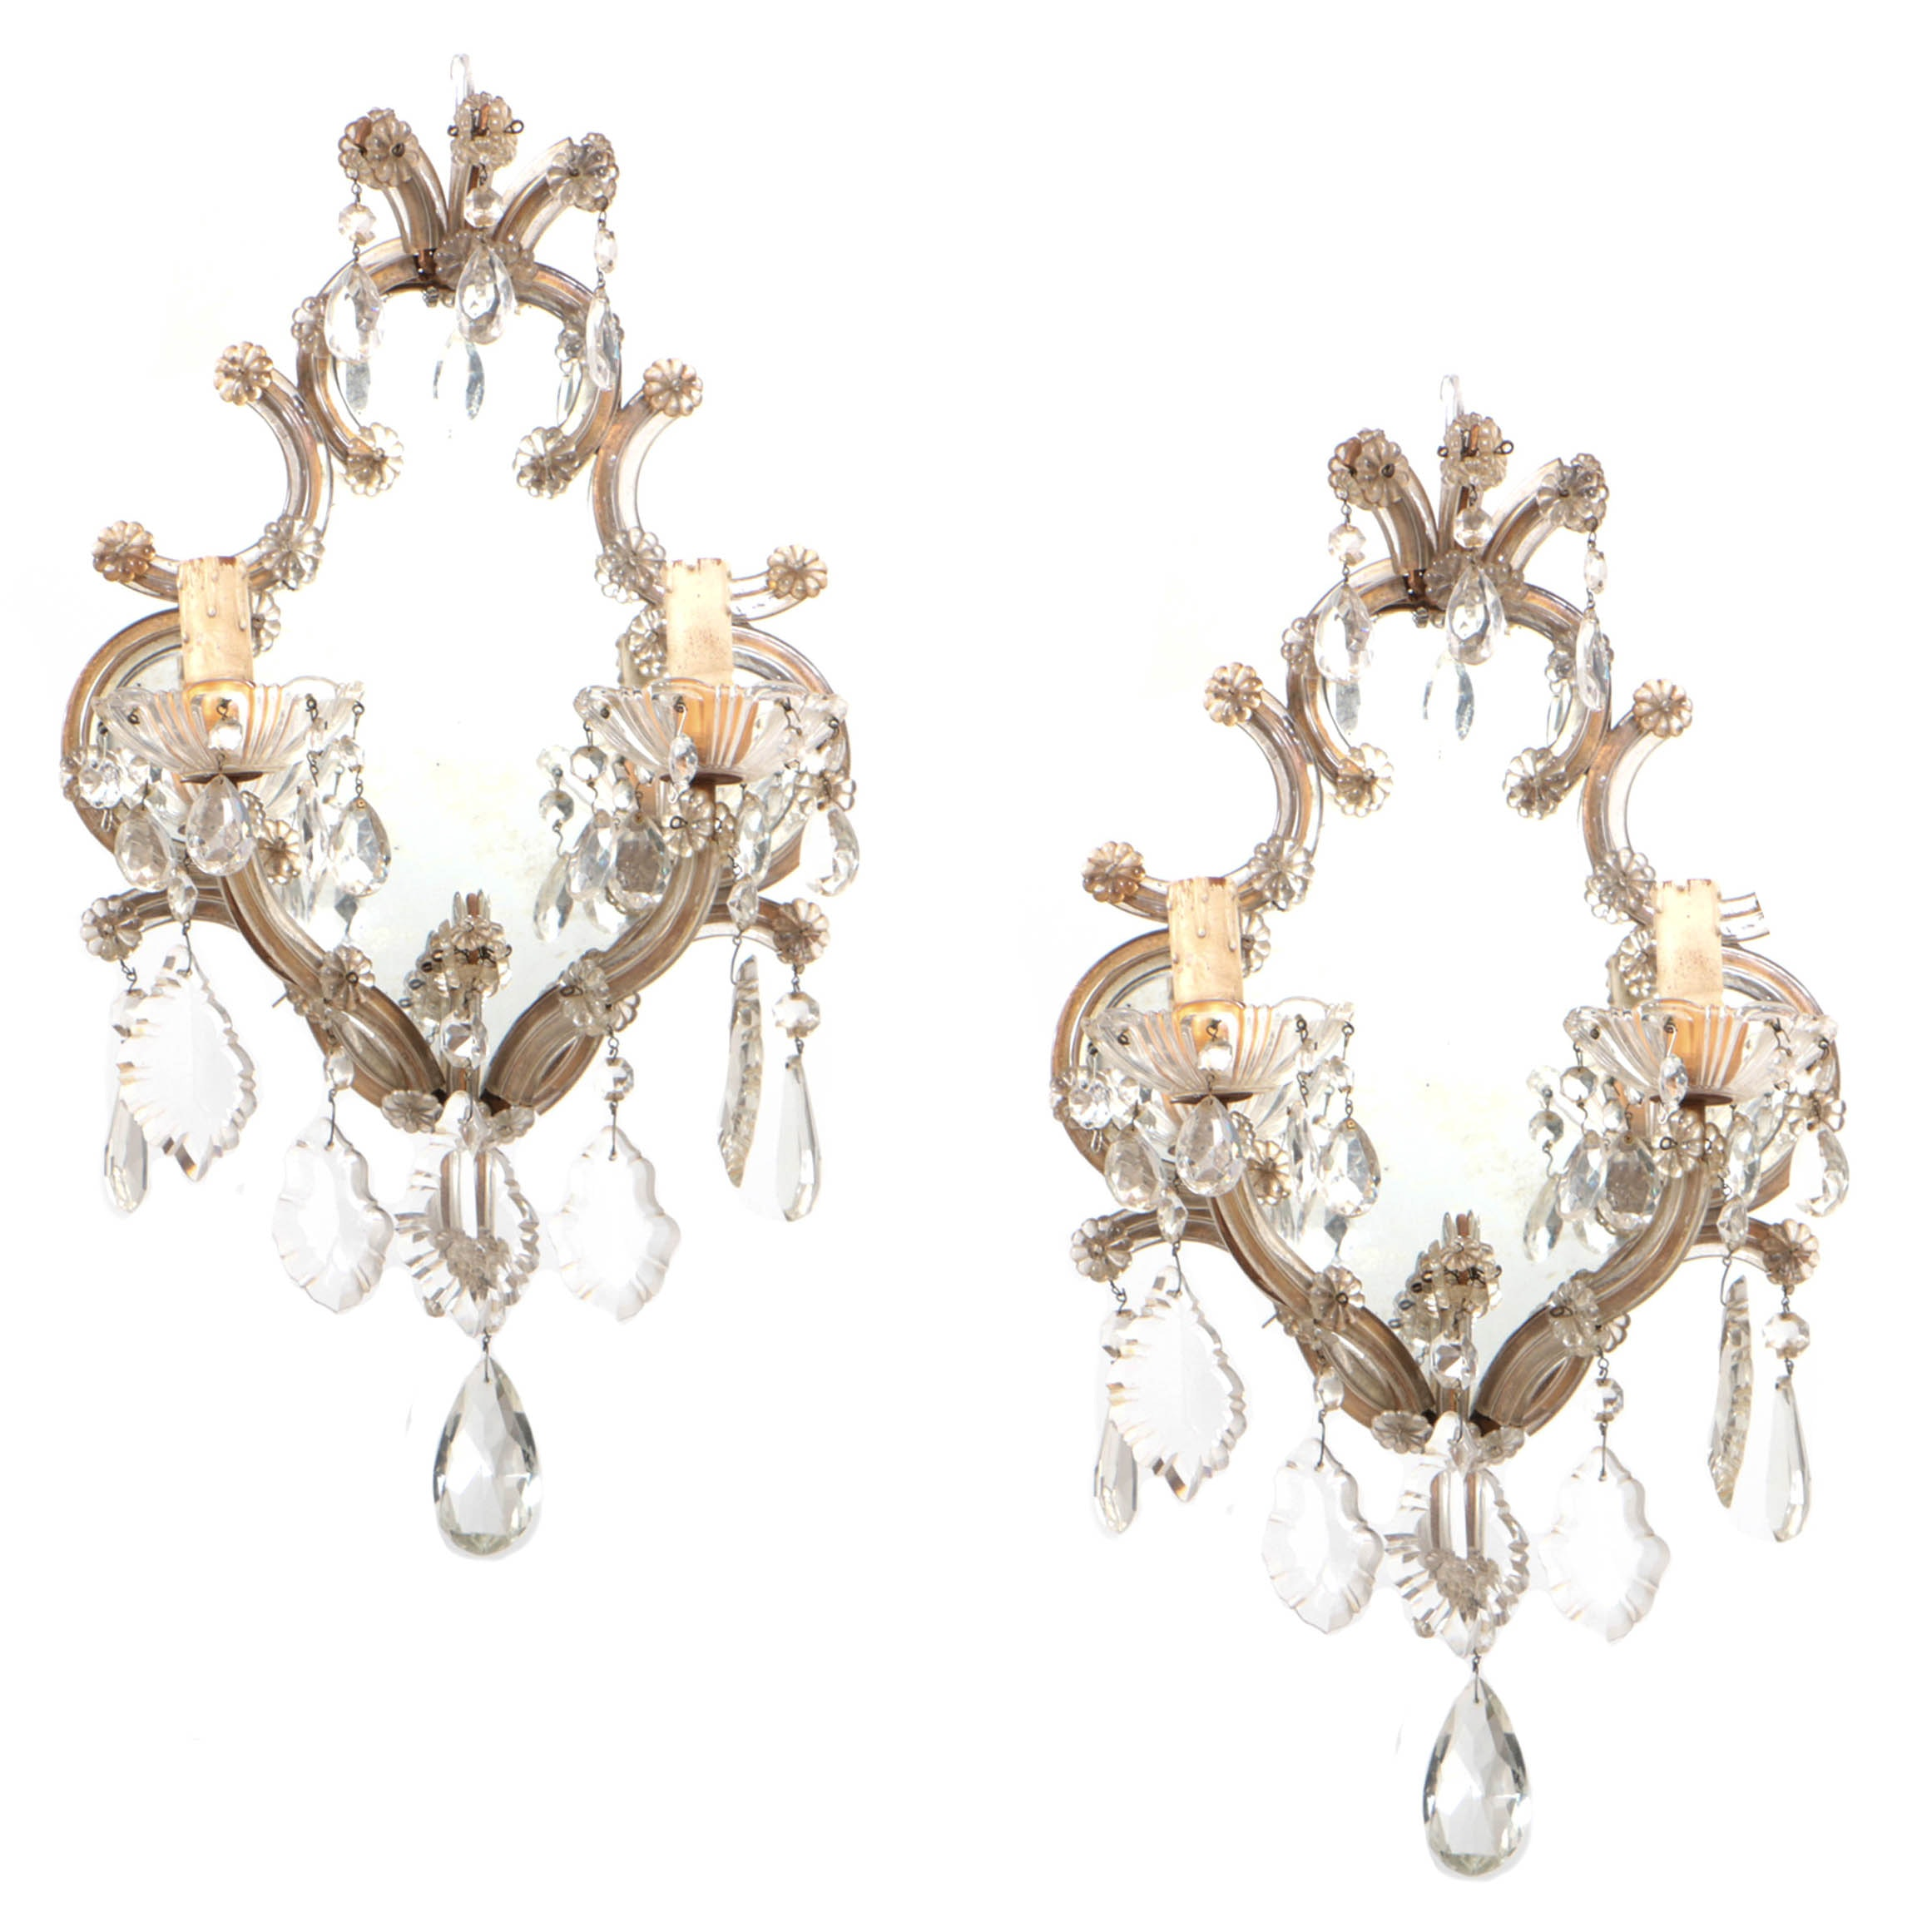 Antique Venetian Glass Mirrored Sconces